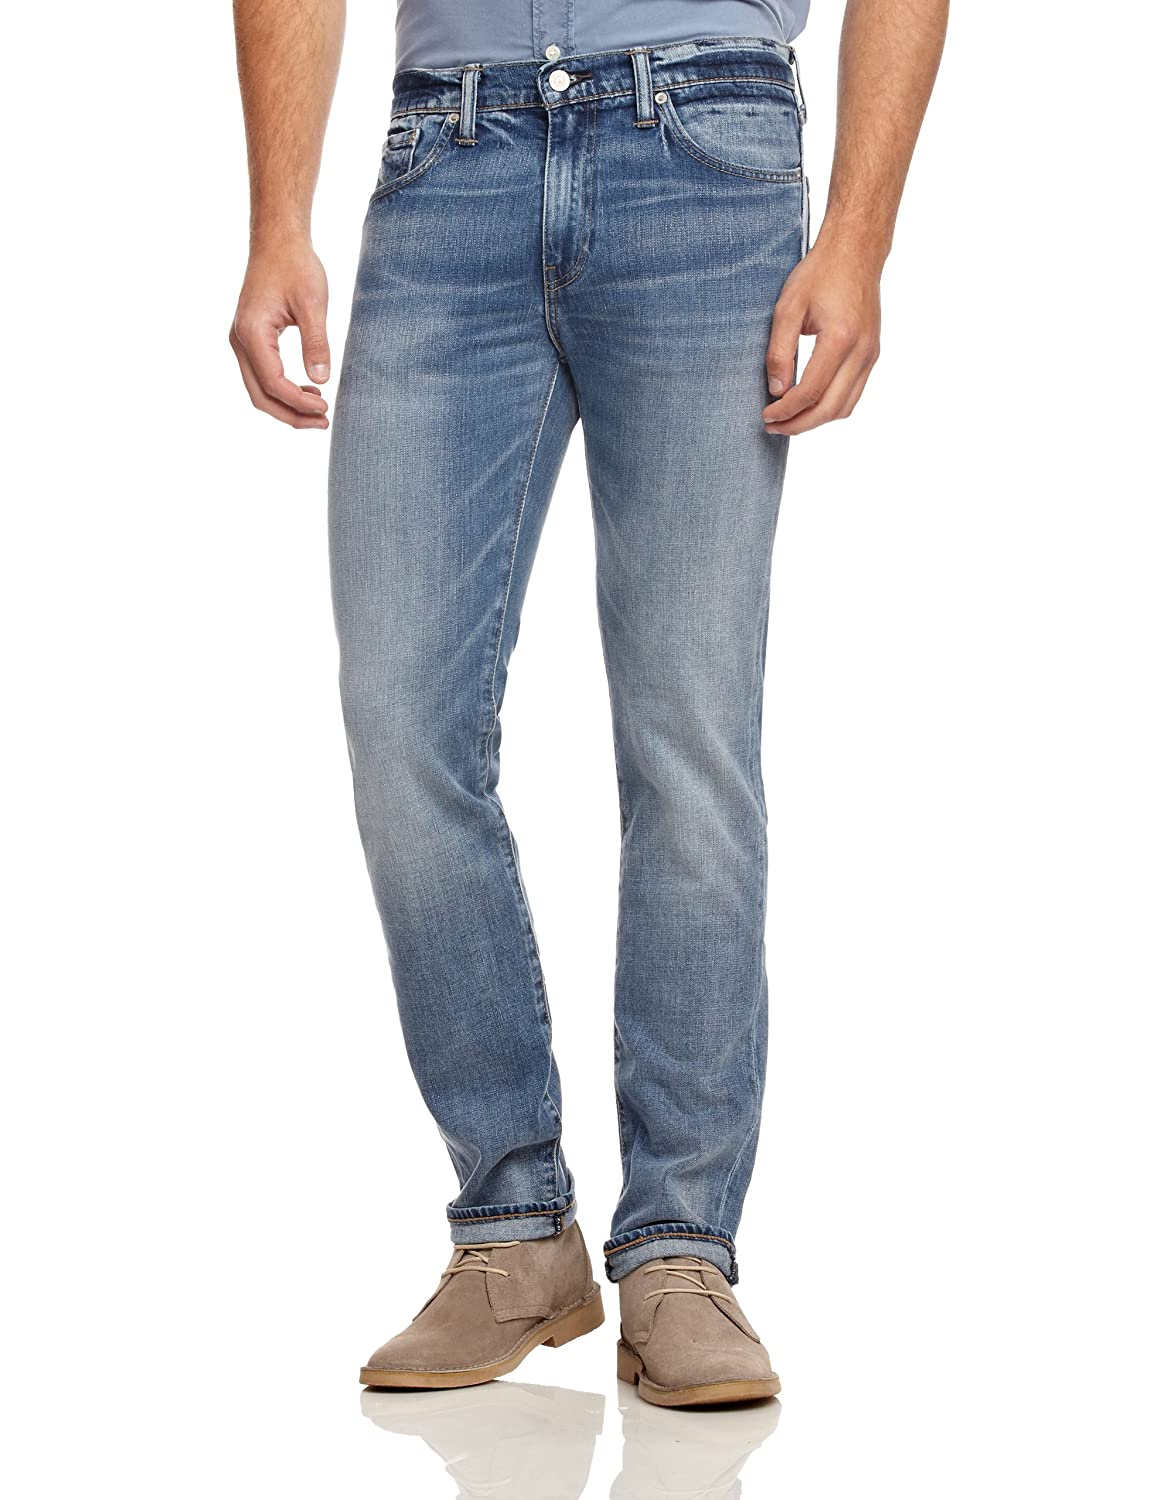 76600c5270d6b Levi s Men s 511 Slim Fit Jeans  Levis  Amazon.co.uk  Clothing